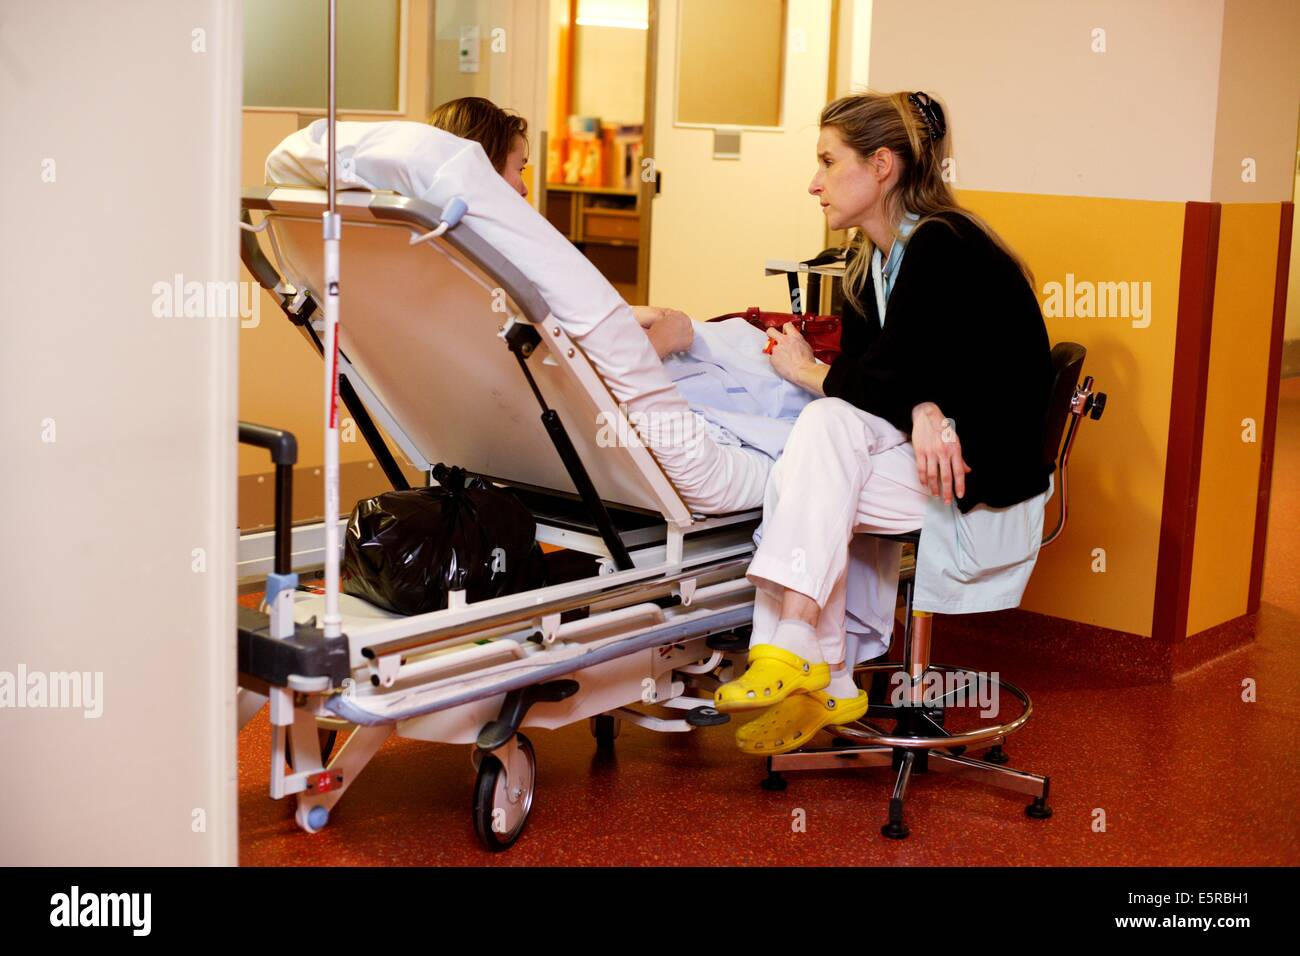 Psychiatric nurse talking with a patient, Emergency department, Limoges hospital, France. - Stock Image